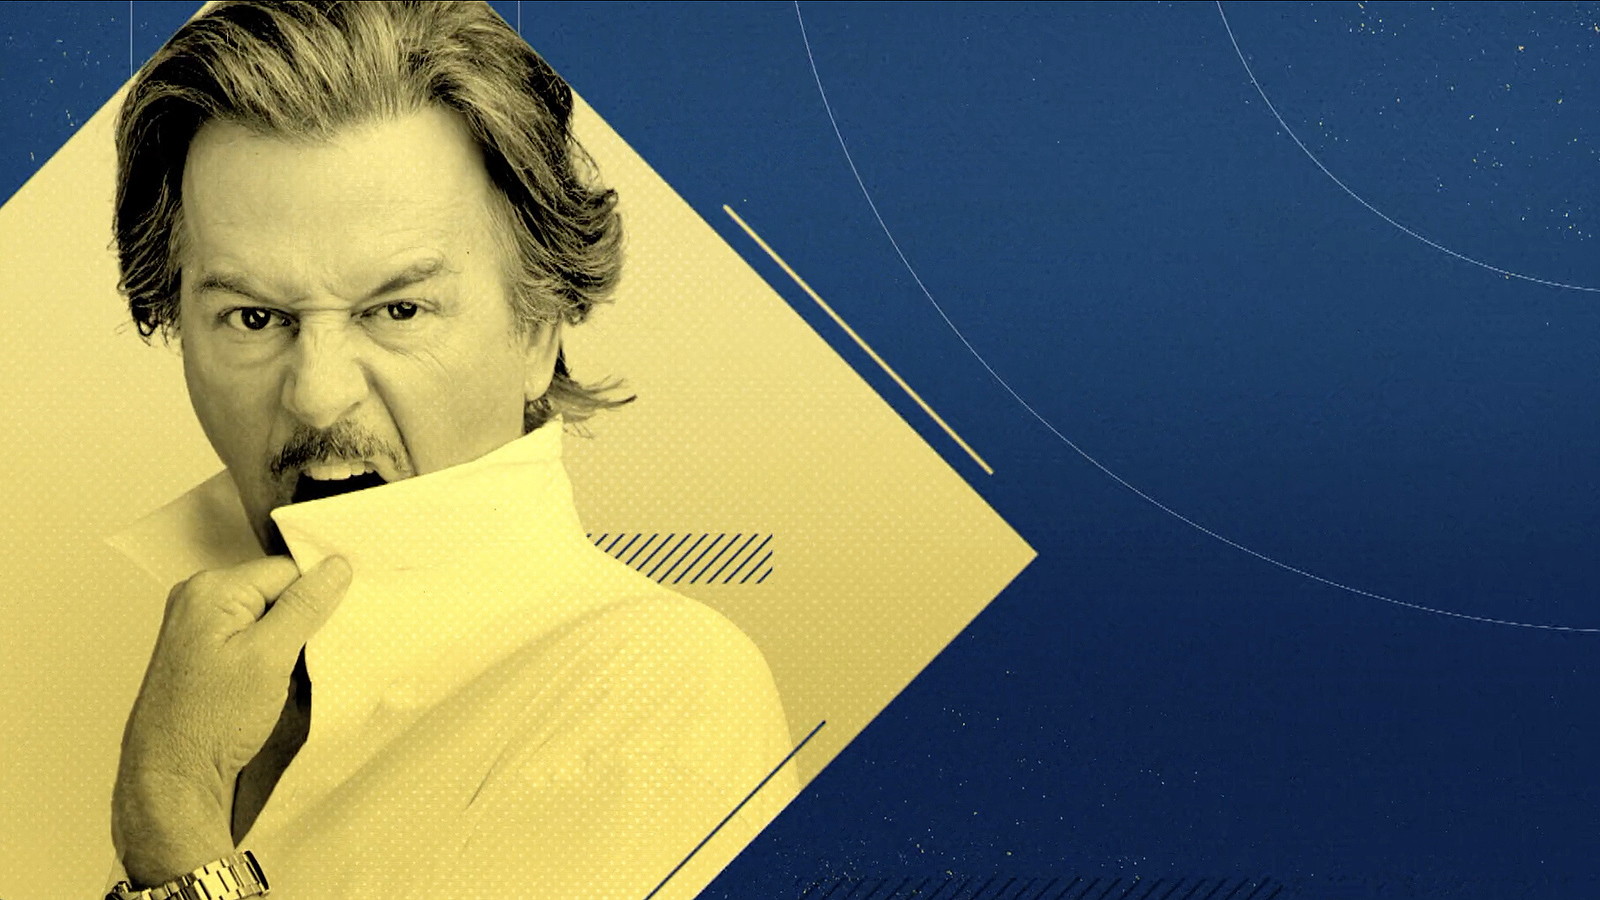 NCS_Comedy-Central_David-Spade_LightsOut_Motion-Graphics_004